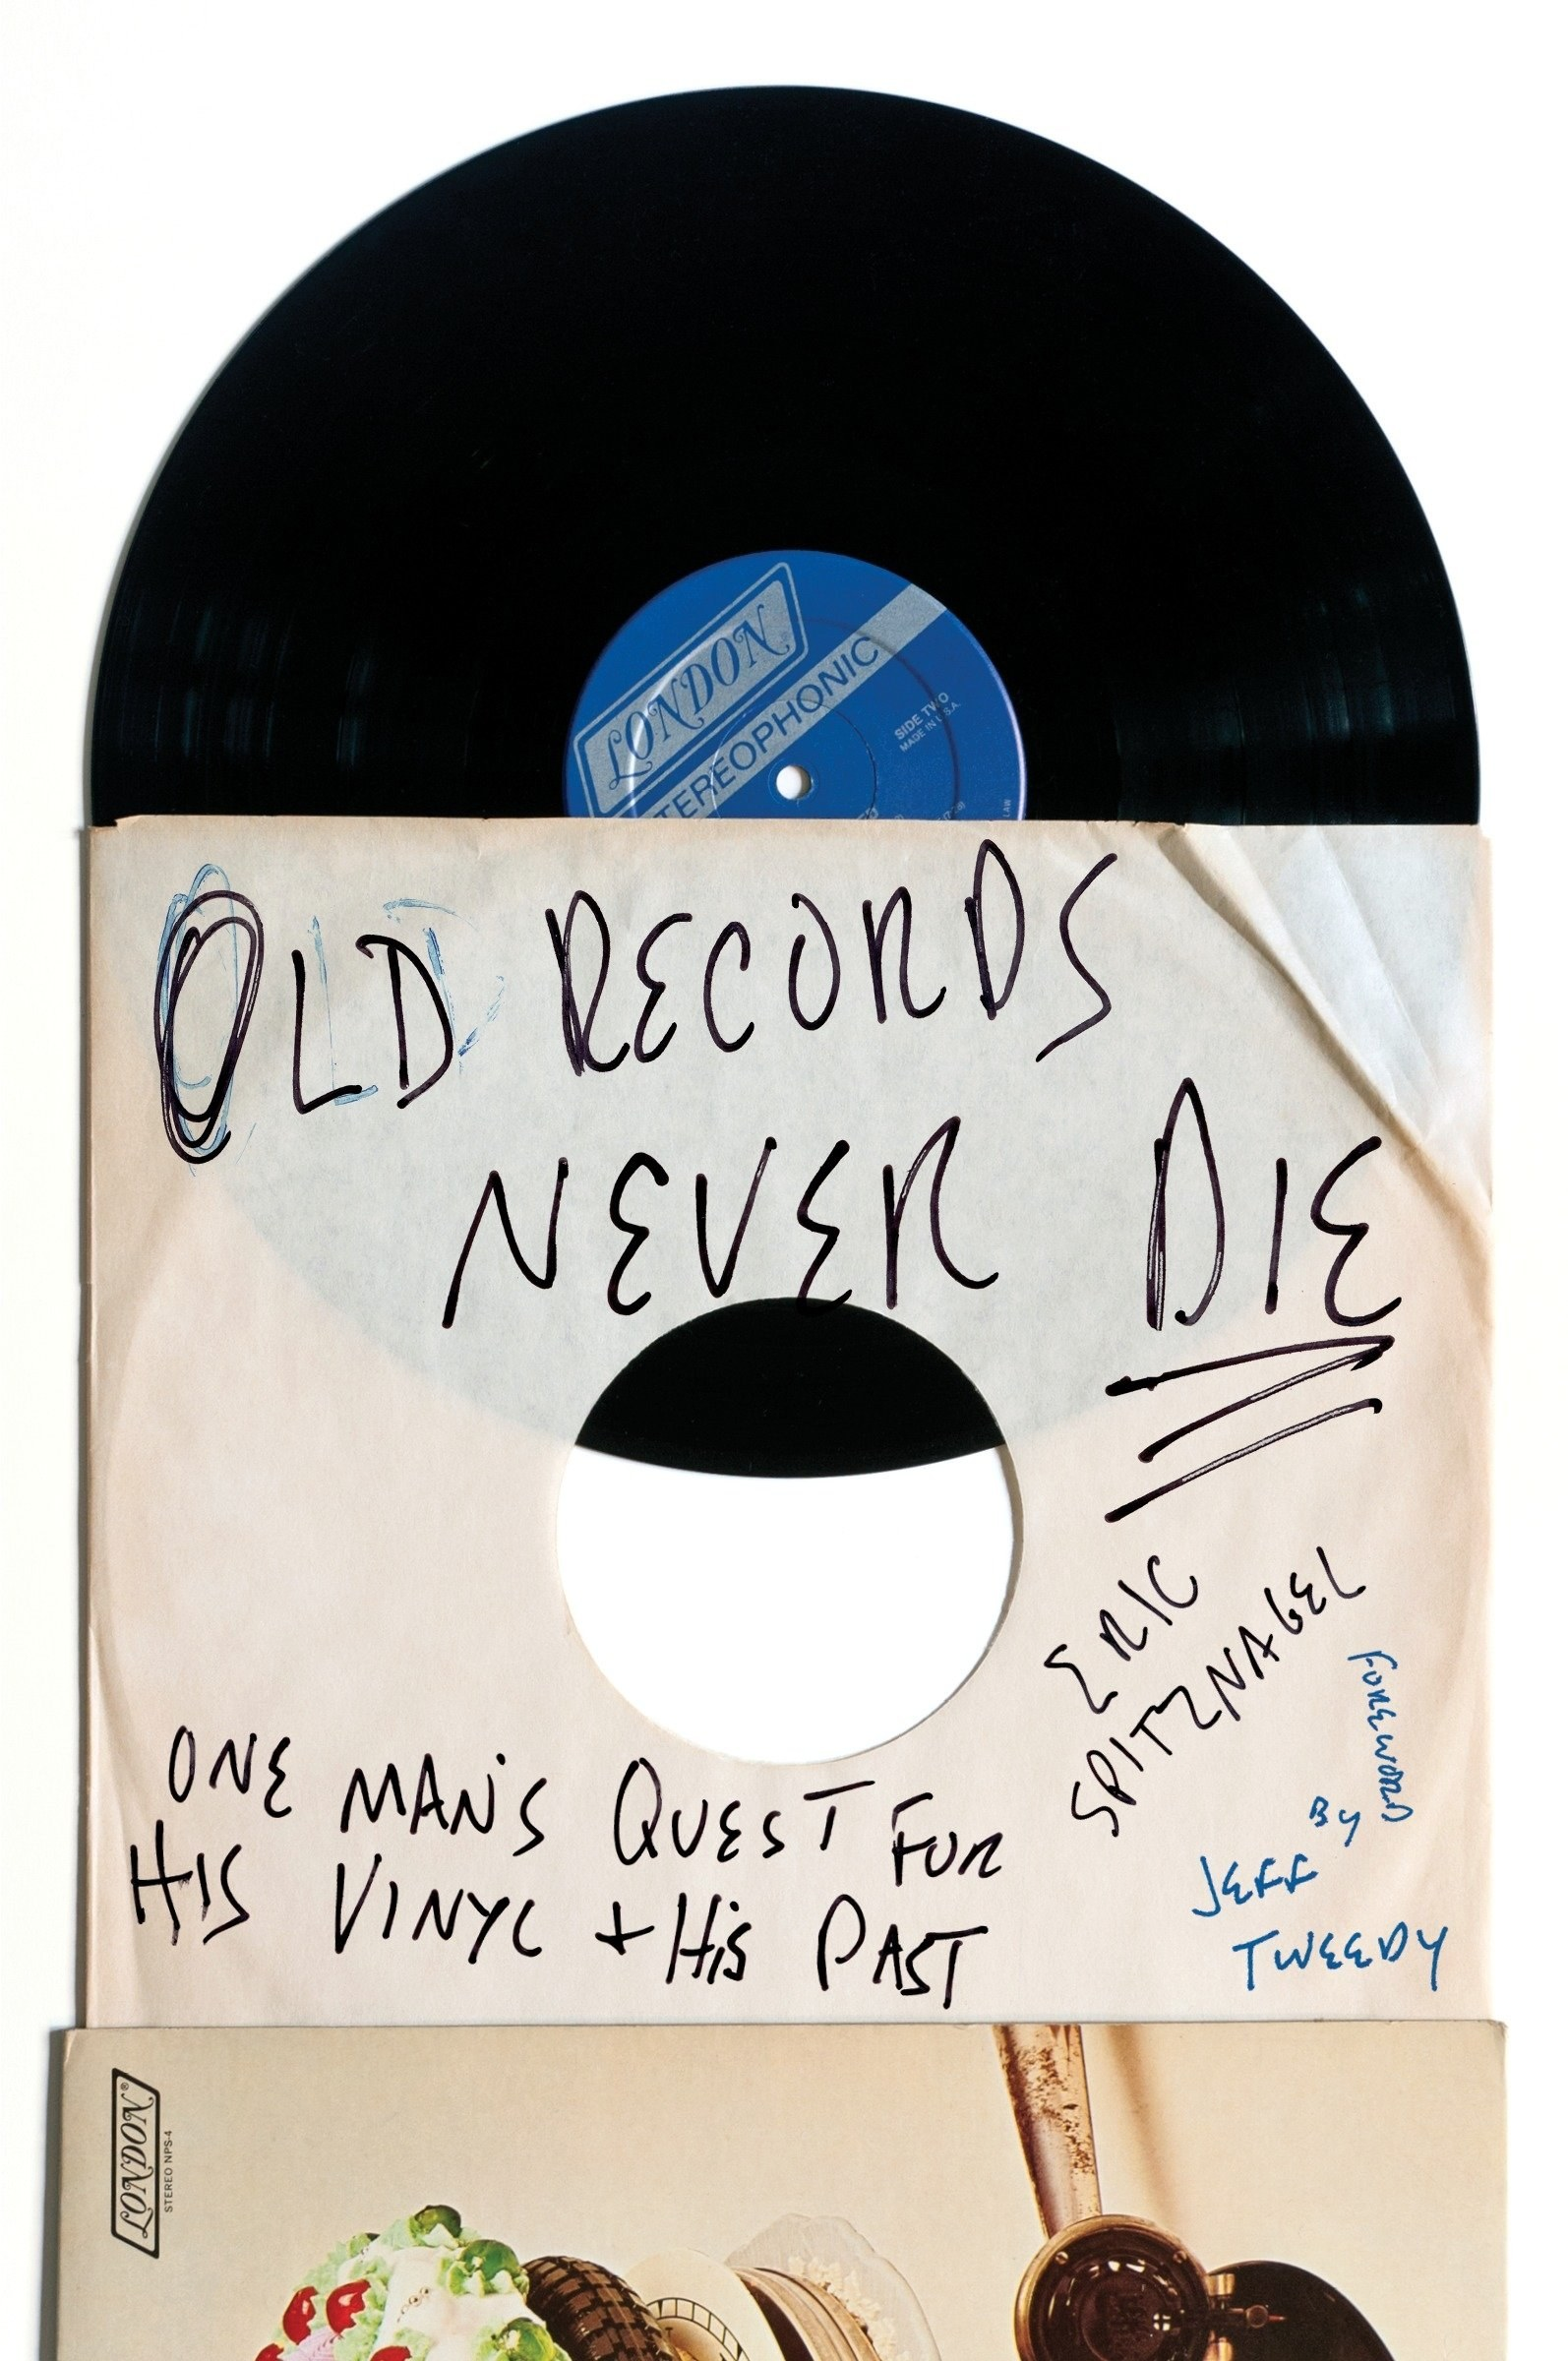 Old Records Never Die